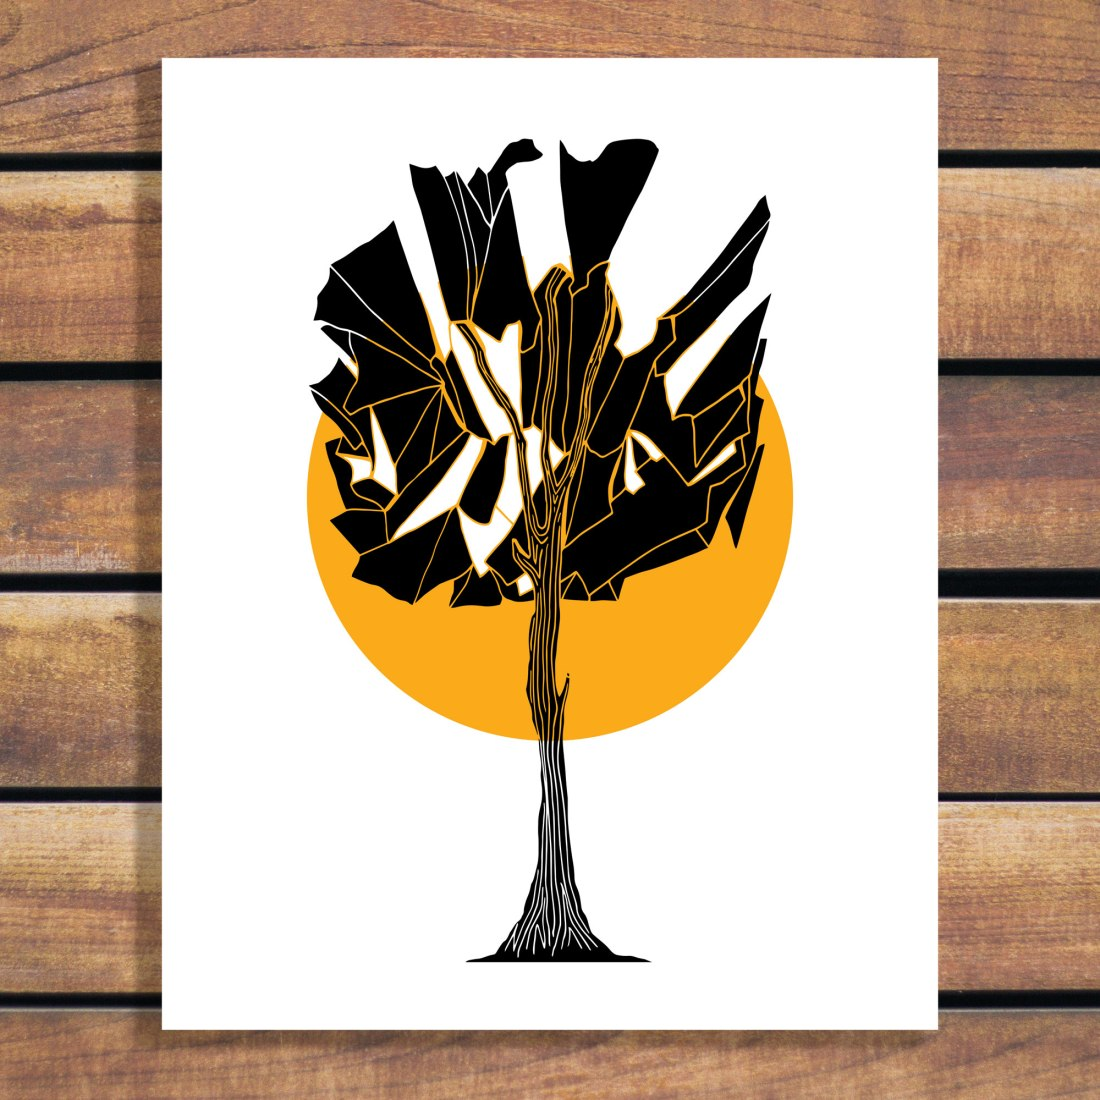 Illustrated Art by Brina Schenk - Tree Illustration and Sun - Compartment or shattered Tree